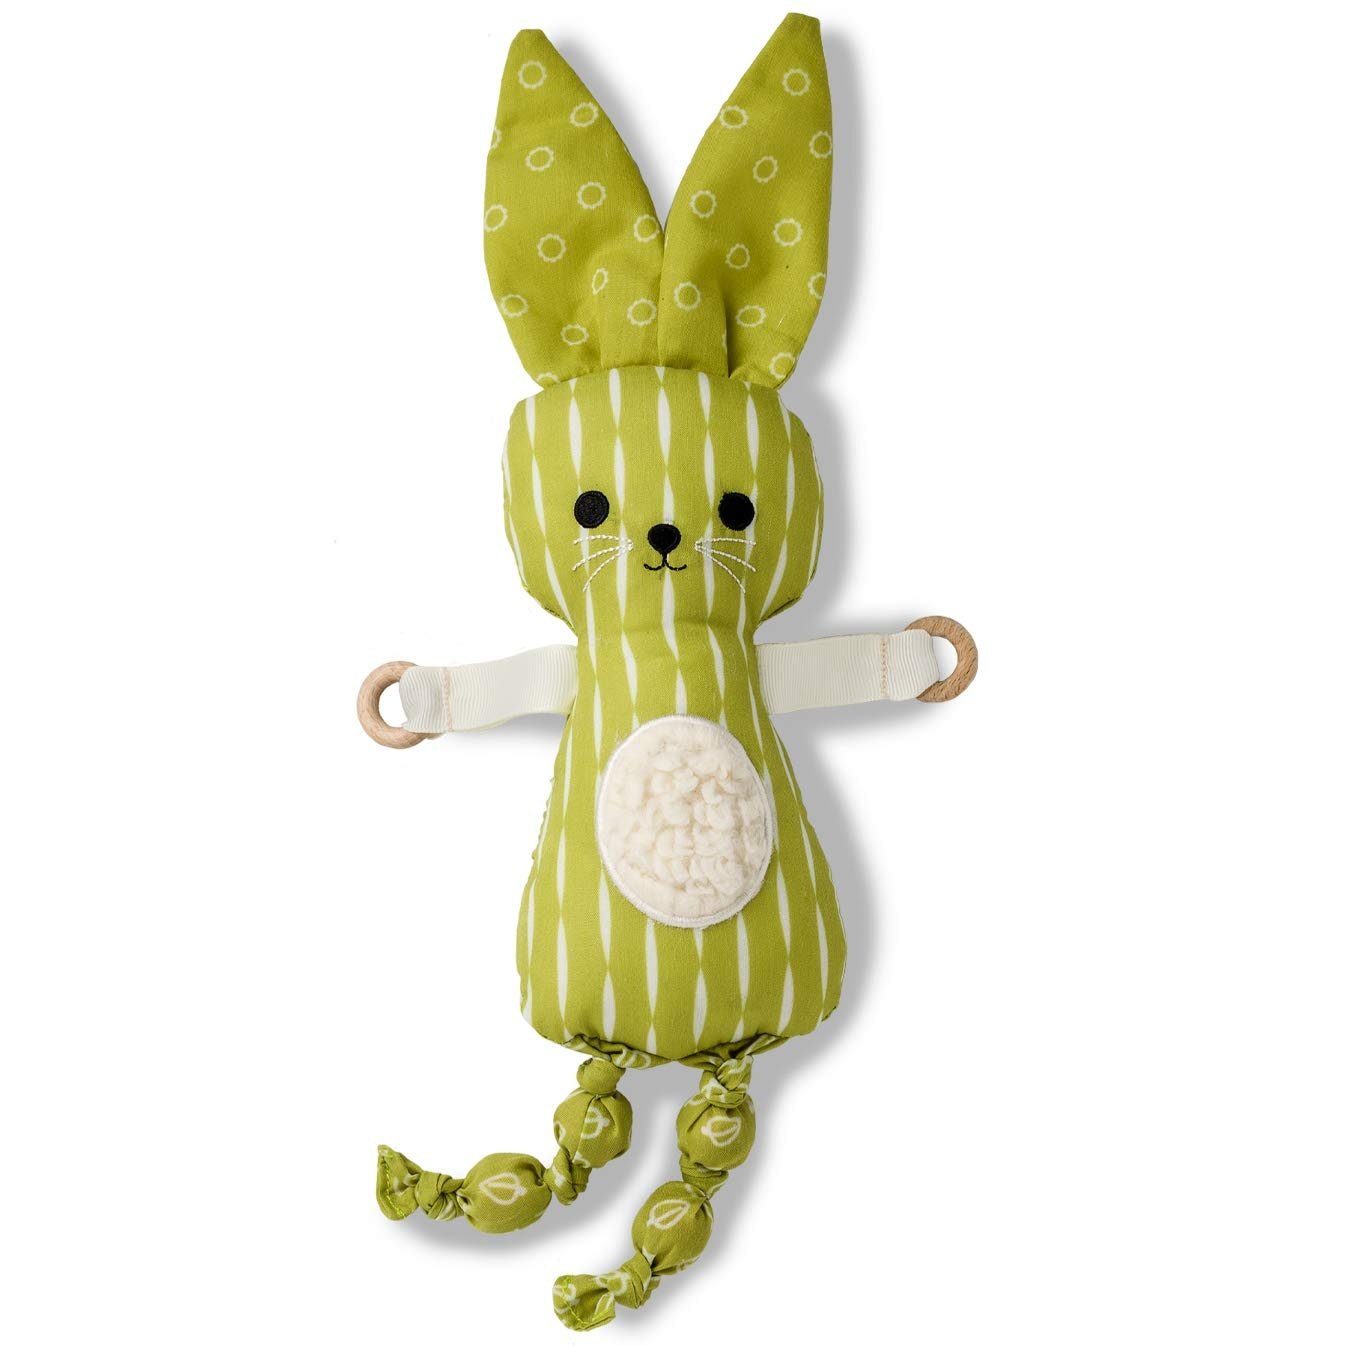 Do Dah Bunny, Cute Stuffed Animal for Boys and Girls, Plush Toy, Great Baby Gift at Next Baby Shower, Cute Nursery Decor Toy, Soft Sensory Baby Plush Toy